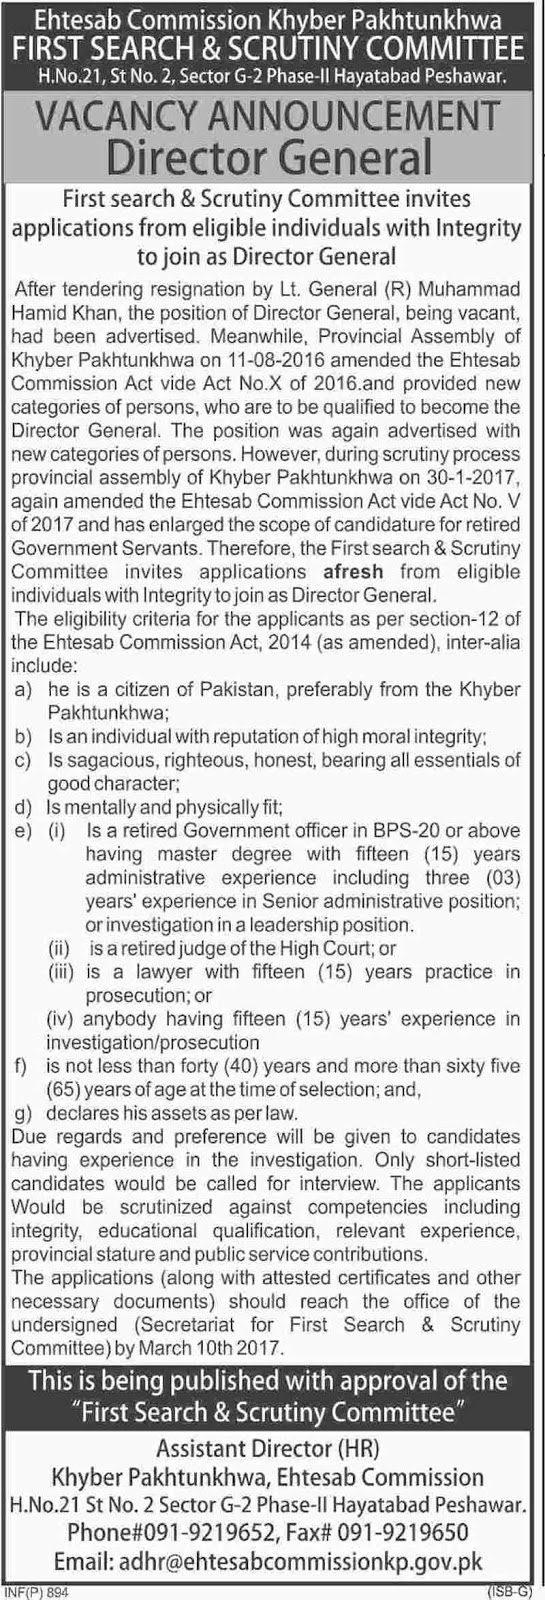 Jobs in Ehtesab Commission Khyber Pakhtunkhwa 23 Feb 2017